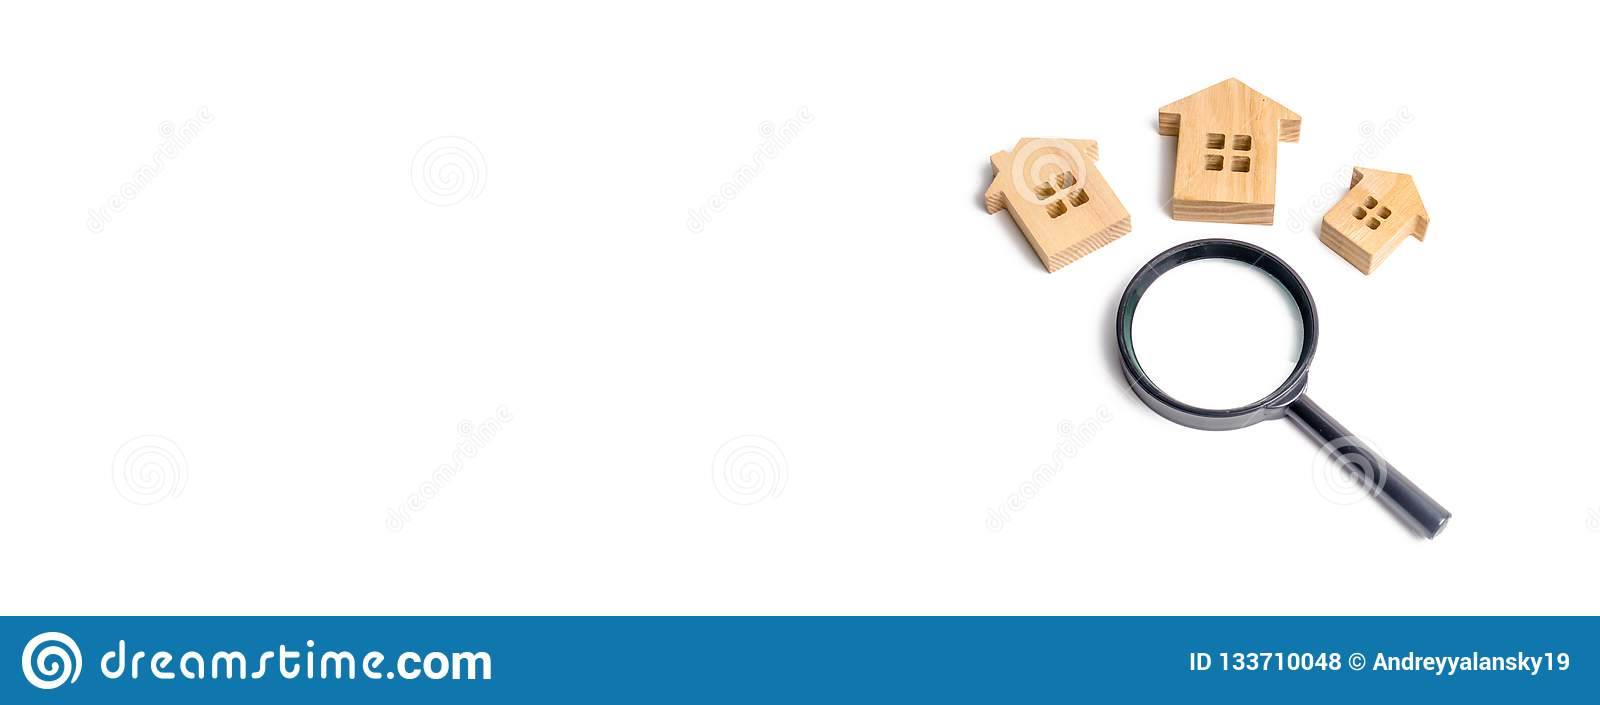 Three wooden houses on a white background. Buying and selling real estate, building new buildings, offices and homes. House search